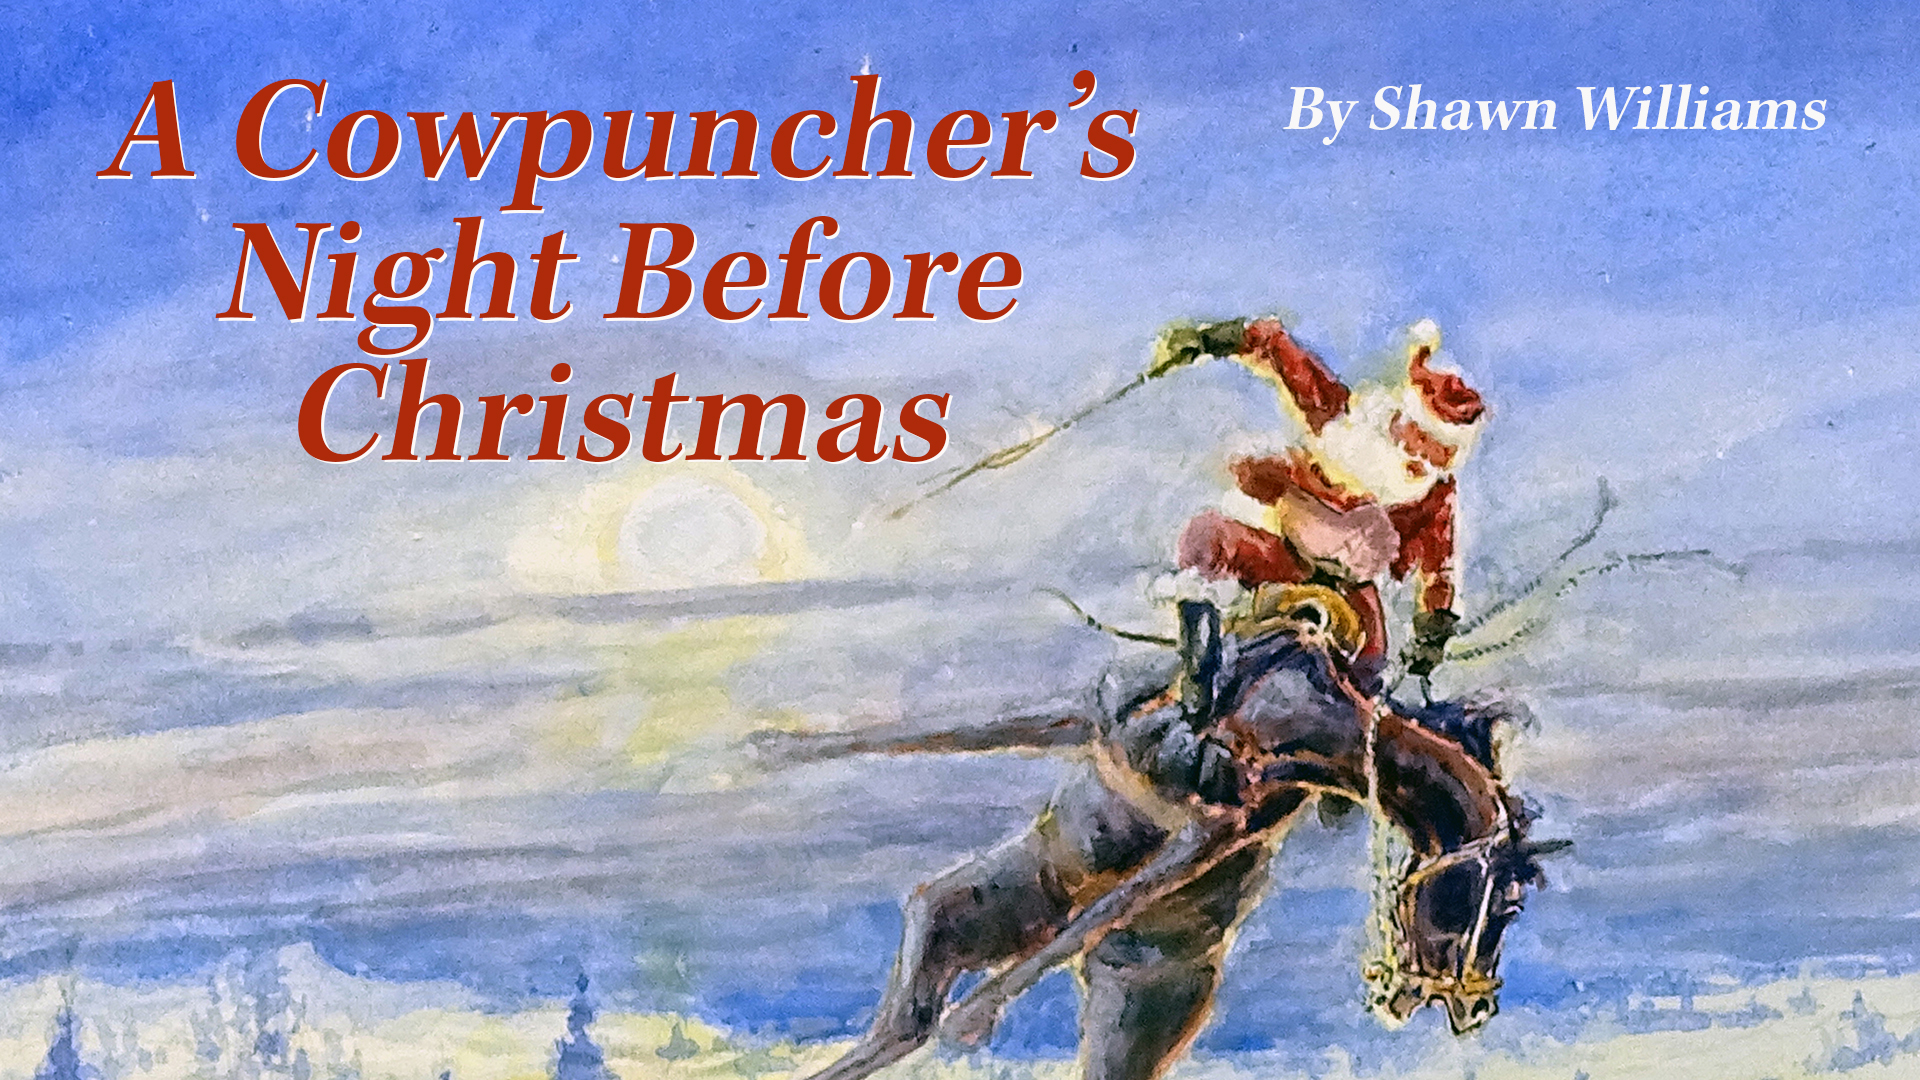 Santa Claus riding a bronc in a painting of the Cowpuncher's Night Before Christmas